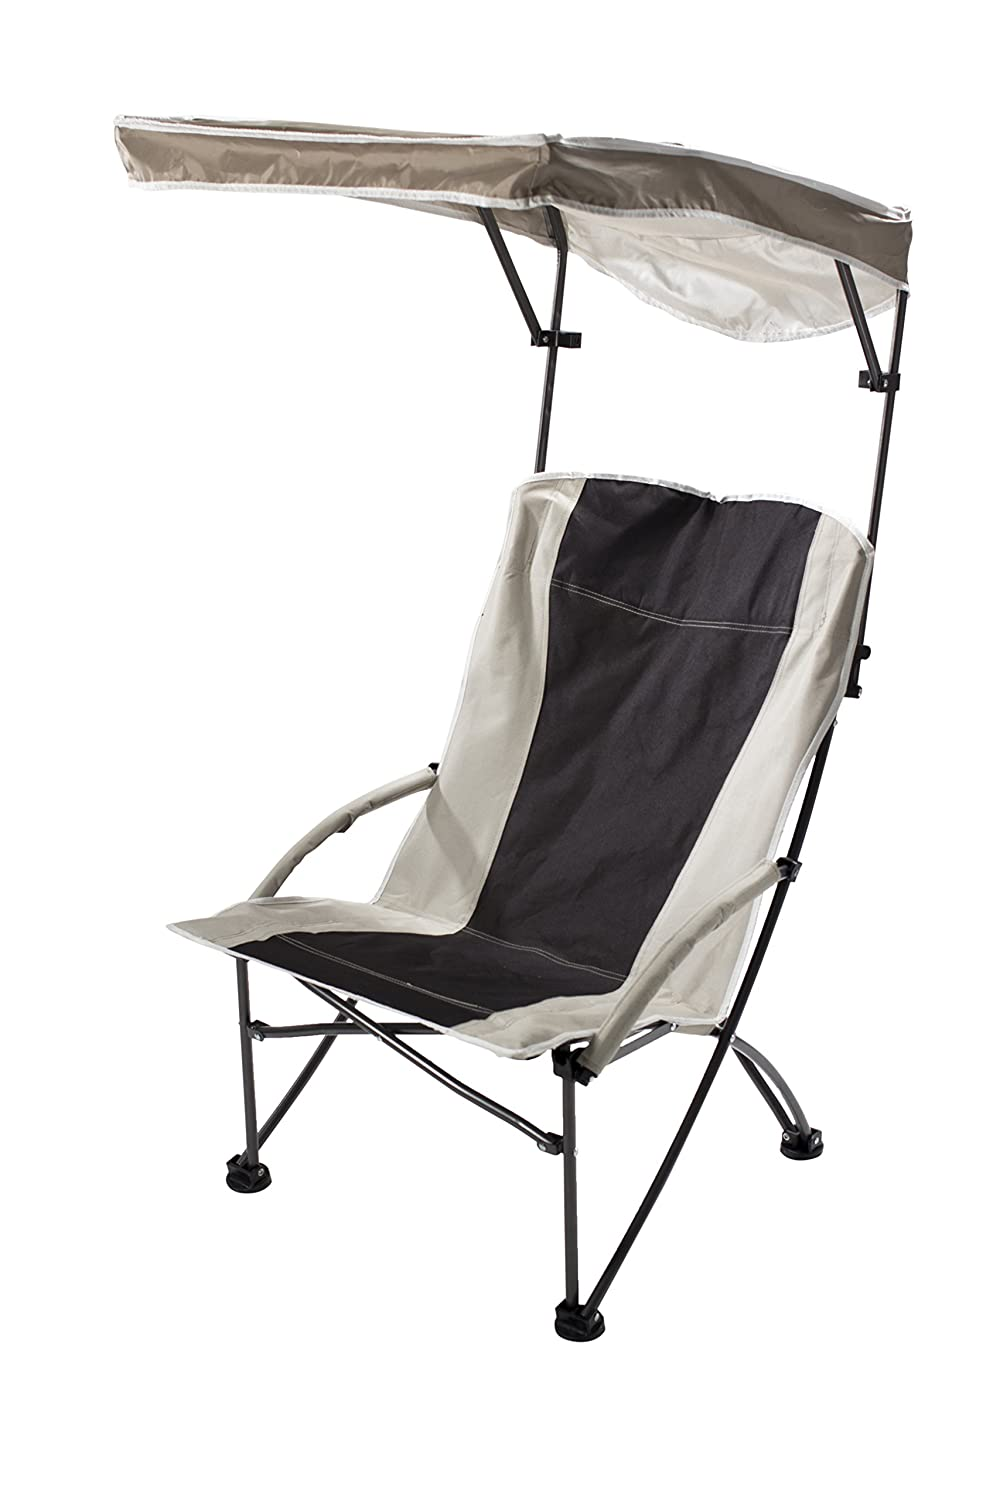 Outdoor canopy chair - Amazon Com Quik Shade Pro Comfort Folding High Camp Chair Black White Sports Outdoors